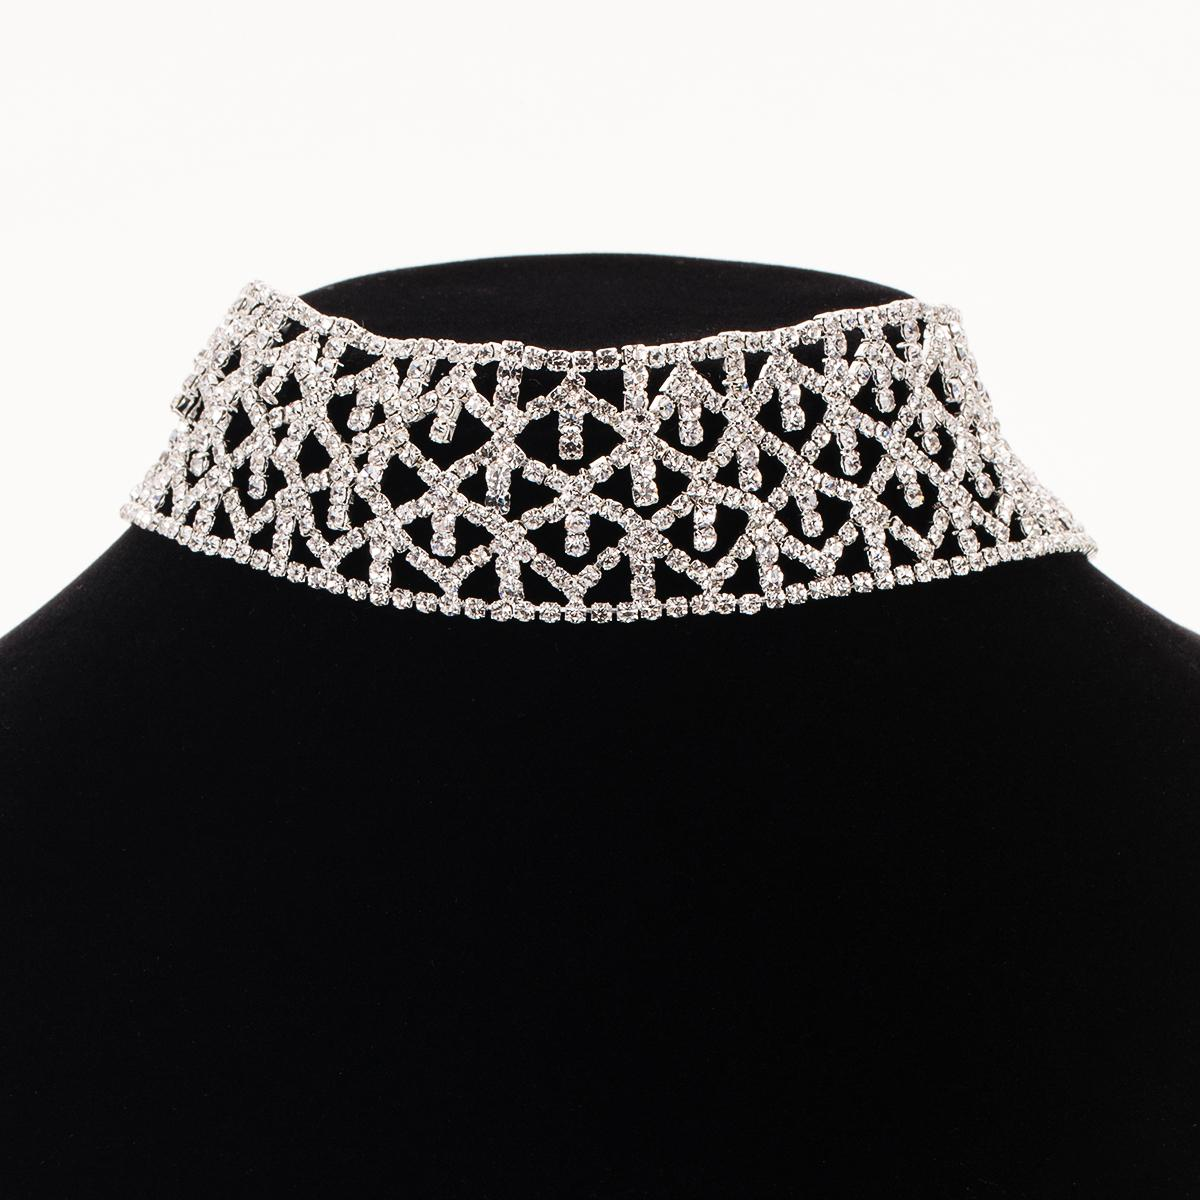 Crystal Rhinestone Choker Necklace Simple Elegant Silver Color Party Wedding Jewelry For Women